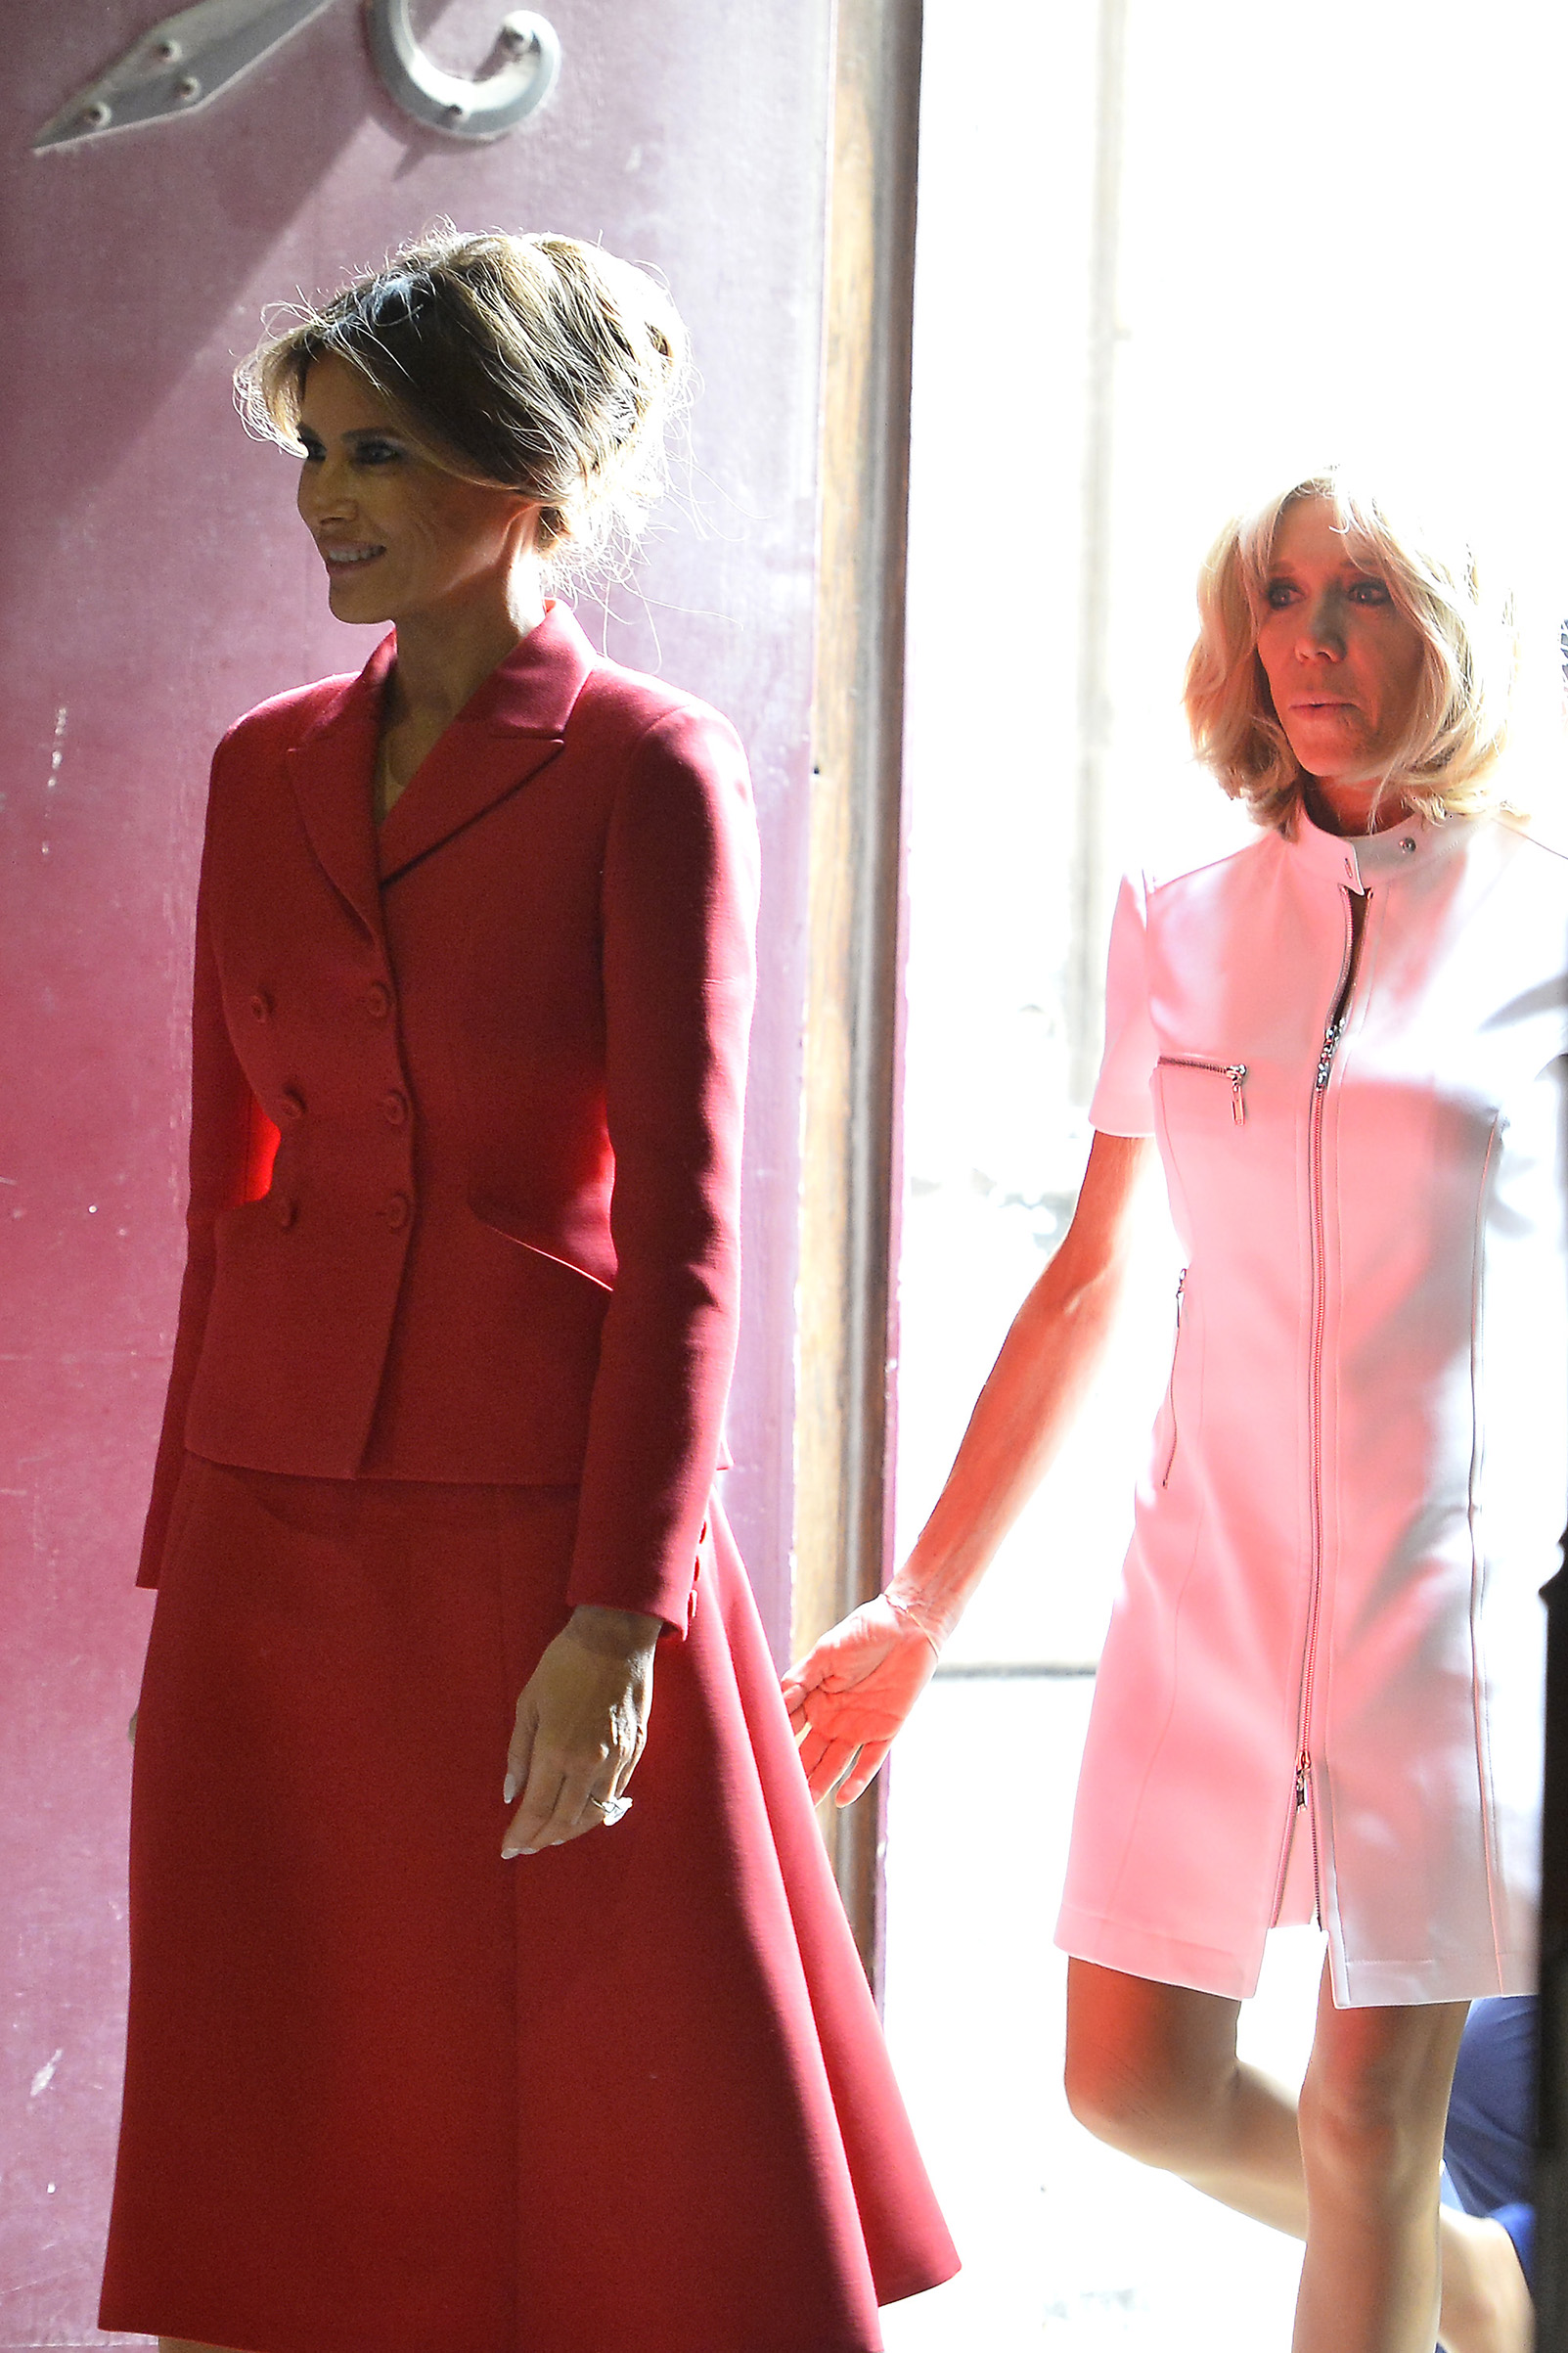 First lady Melania Trump  in red Dior skirt suit, and French First Lady Brigitte Macron arrive to visit Notre Dame Cathedrale on July 13, 2017 in Paris, France.